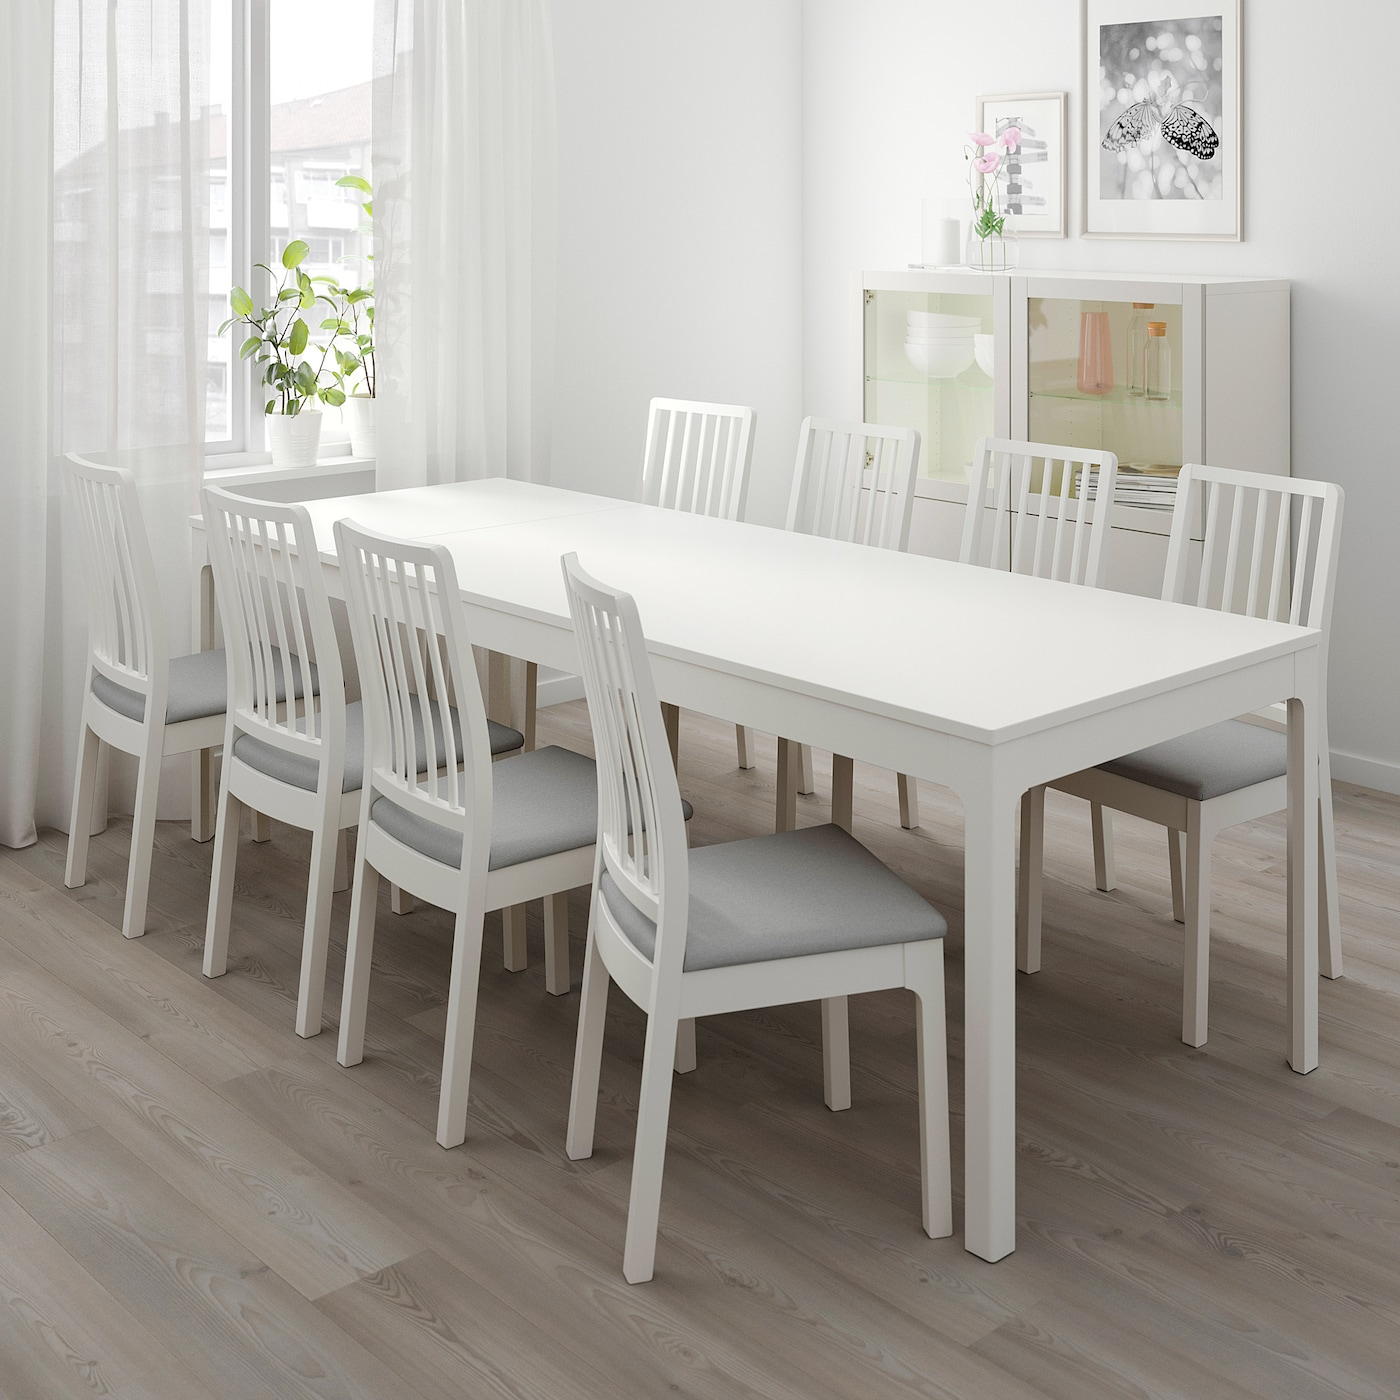 Picture of: Ekedalen Extendable Table White Ikea